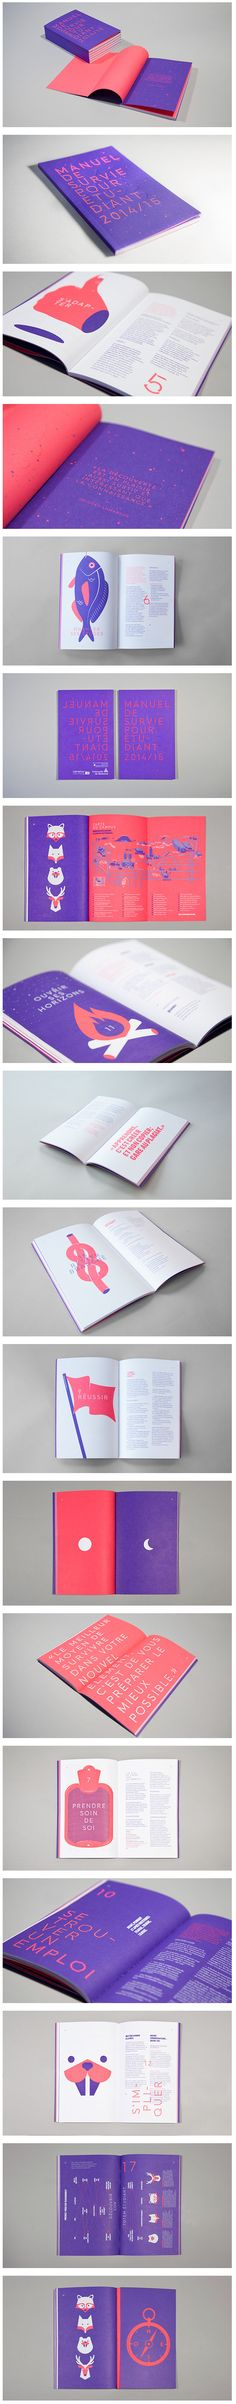 """UdeM Manuel de survie de l'étudiant 2014/2015 by Baillat Cardell & fils Transform a practical guide for new students into a cool original graphic book. Such was the task that the UdeM, Université de Montreal, asked us. Like a boy-scout guide, the """"Manuel de survie pour étudiants"""" show the different aspects of school life at UdeM in a fun graphic way.The illustrations and texts give an editiorial perspective to the little book."""